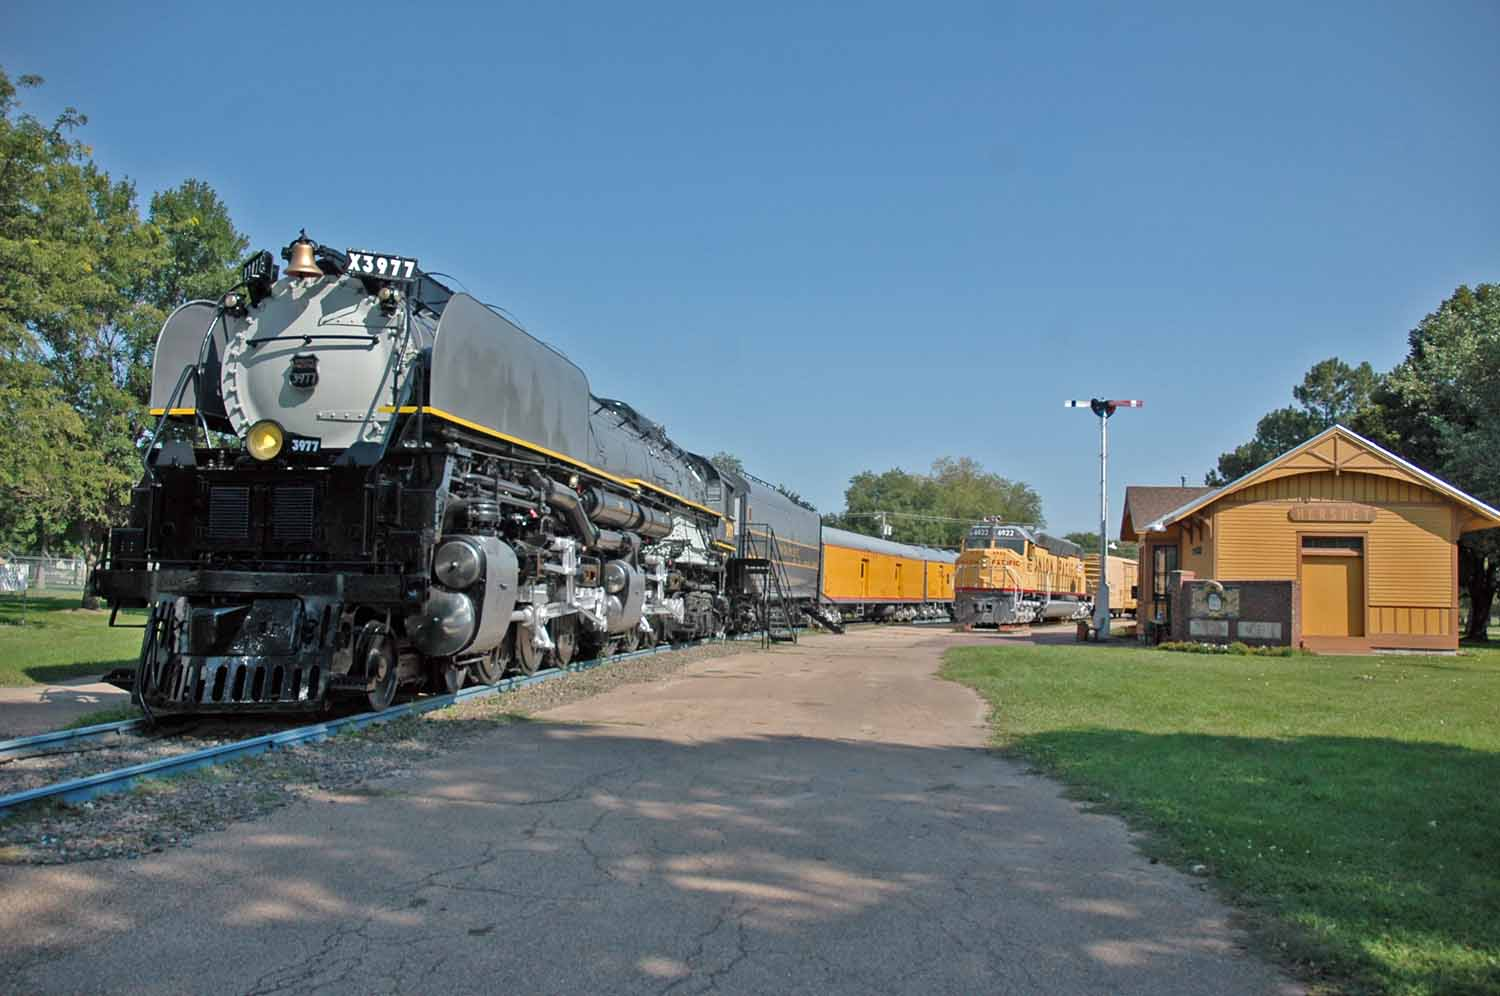 Rail museum in North Platte Nebraska